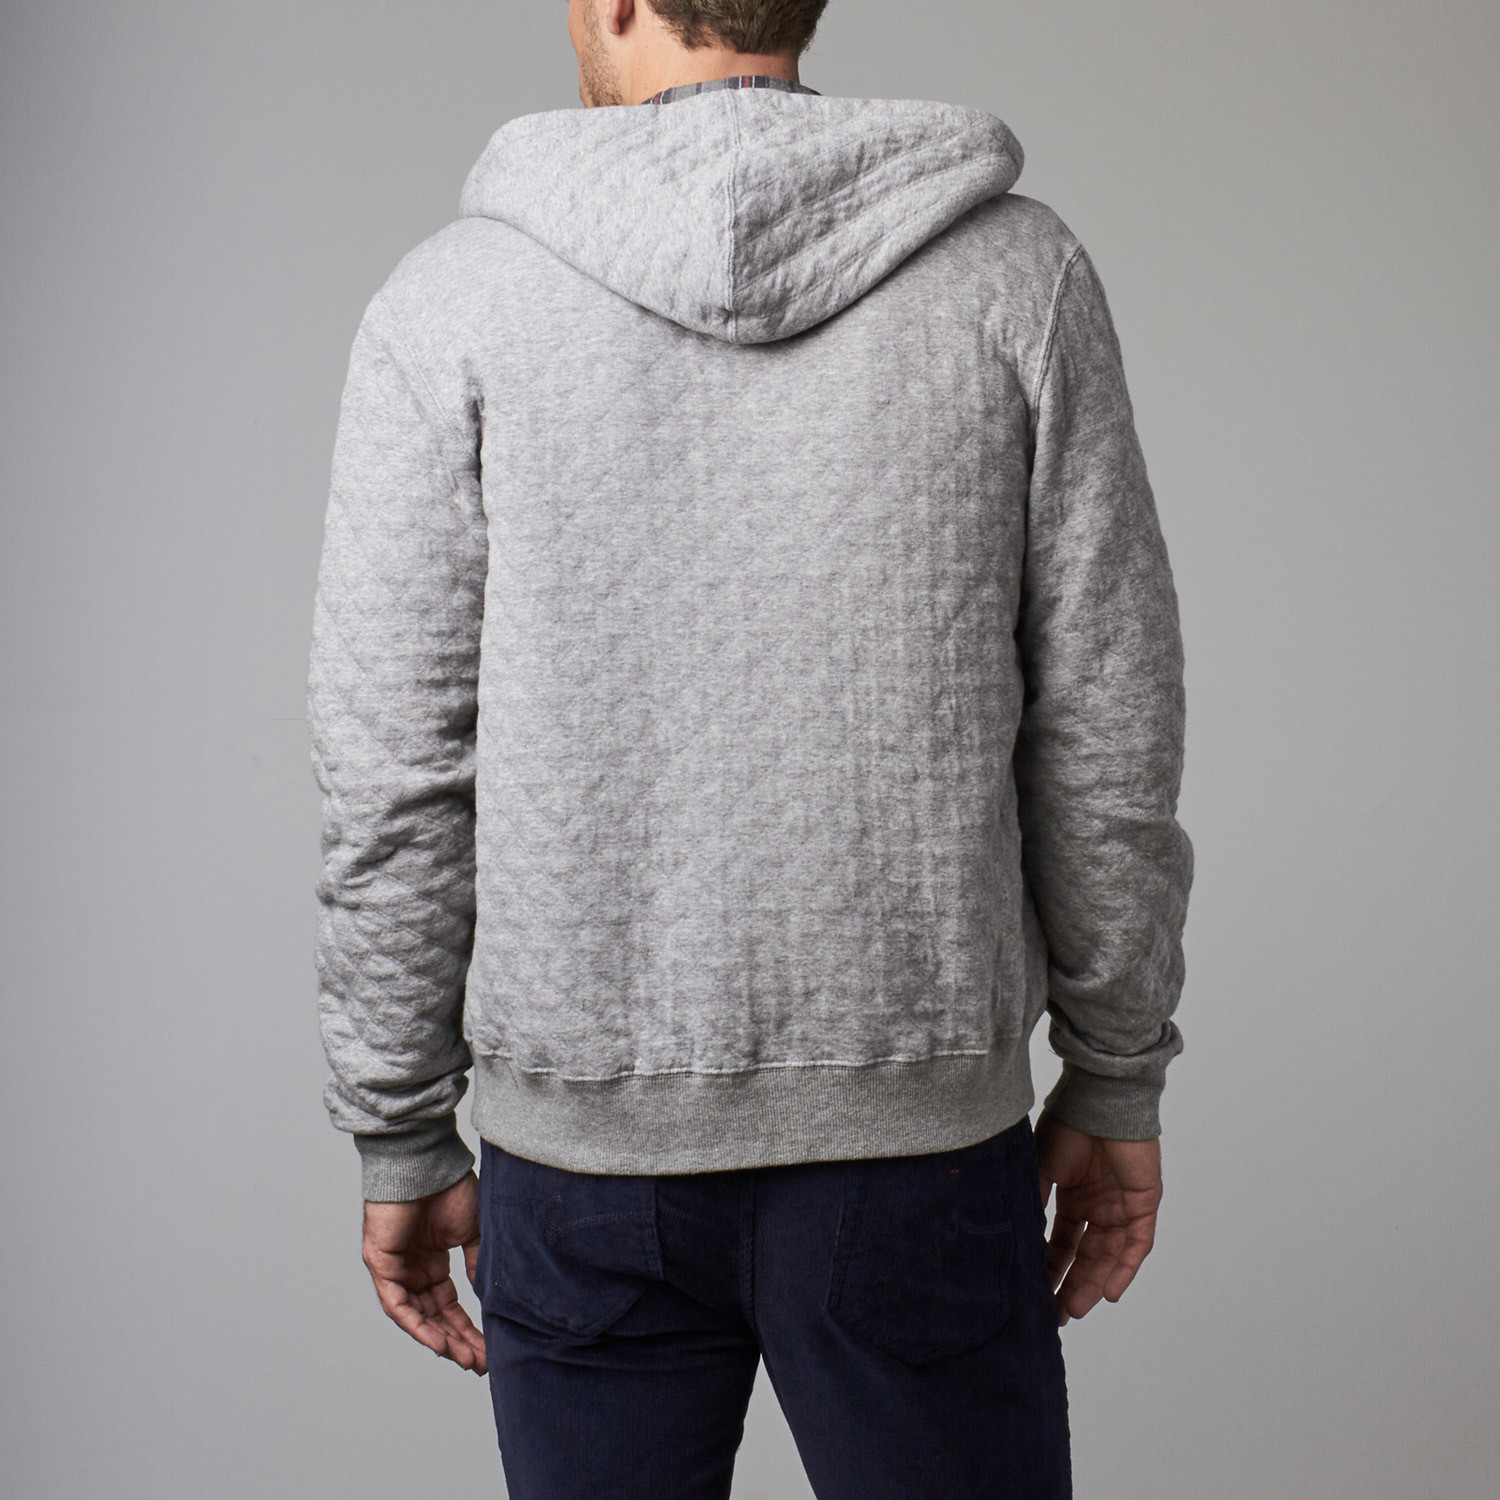 mens quilt zoom quilted greygrey peacocks zip previousnext hoodie thru